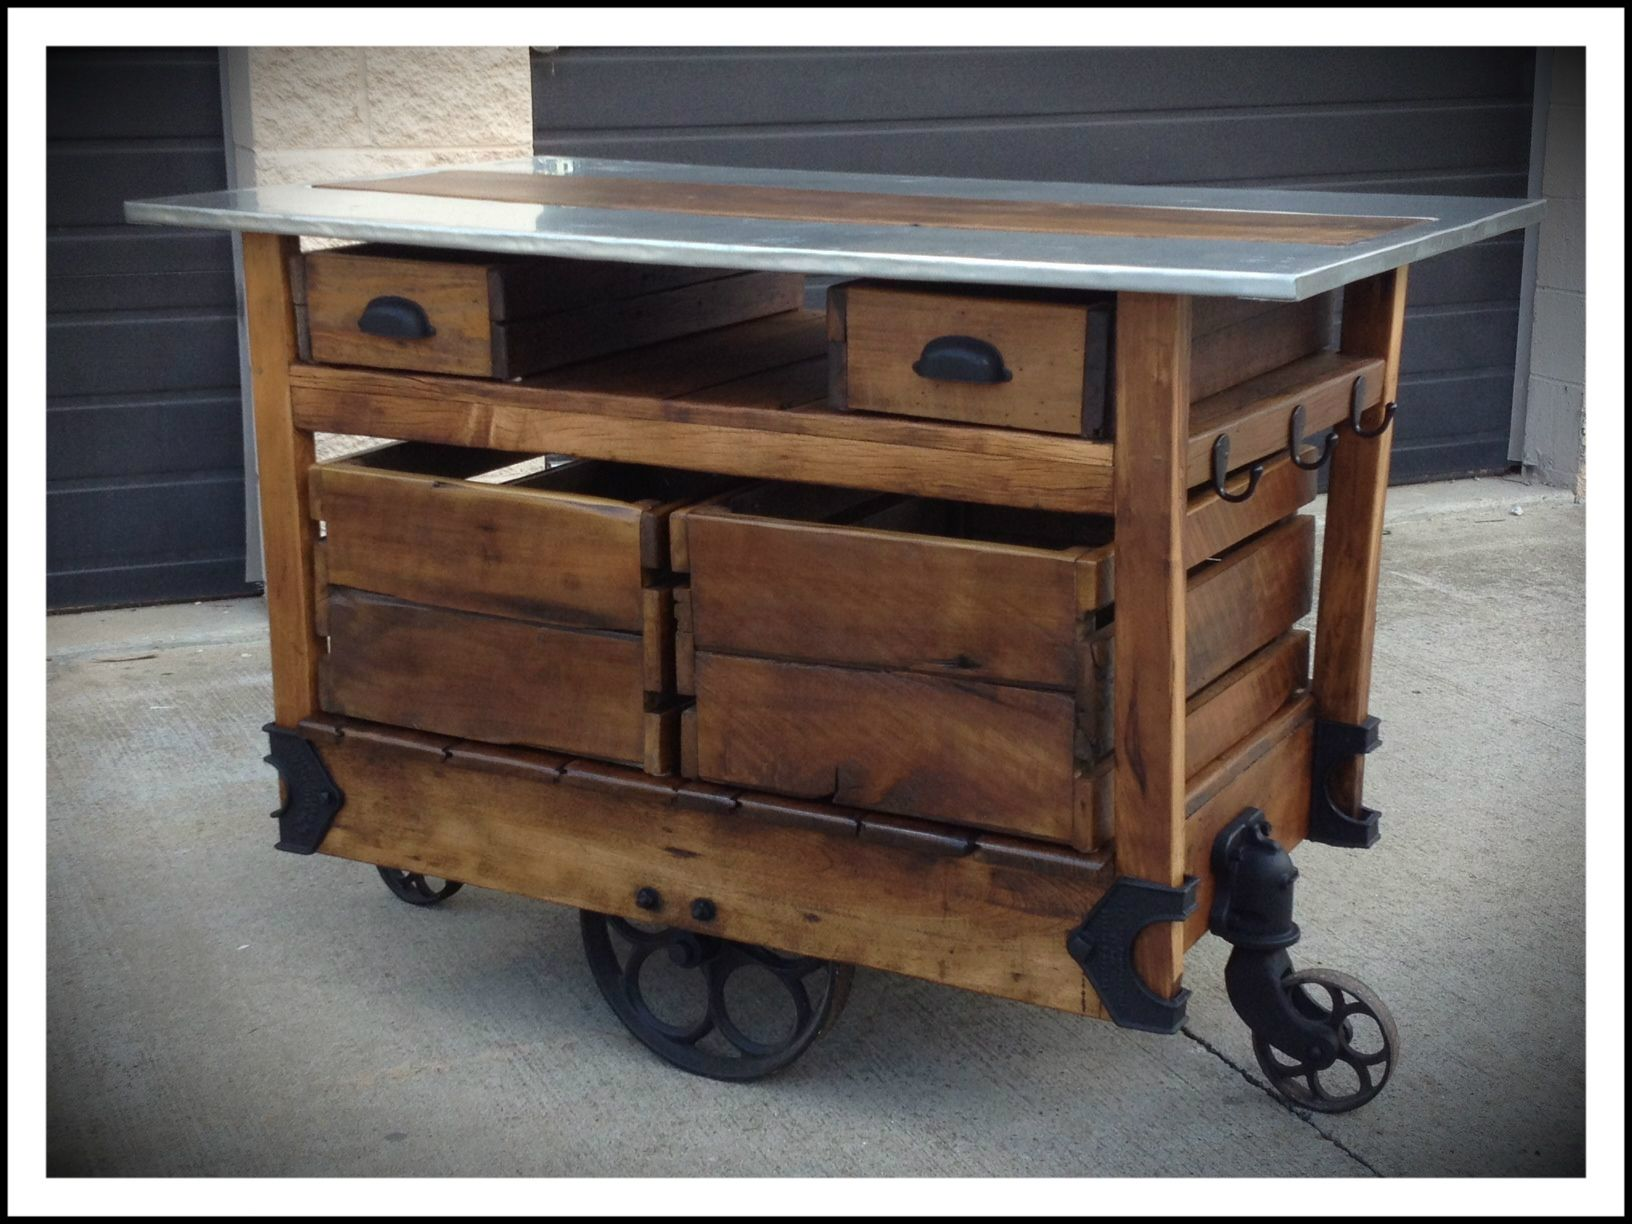 Ideas Furniture Terrific Rustic Kitchen Island Cart With Wheels Base As  Well As Drawers Storage For Traditional Island Designs Ideas Shapely Kitchen  Island ...